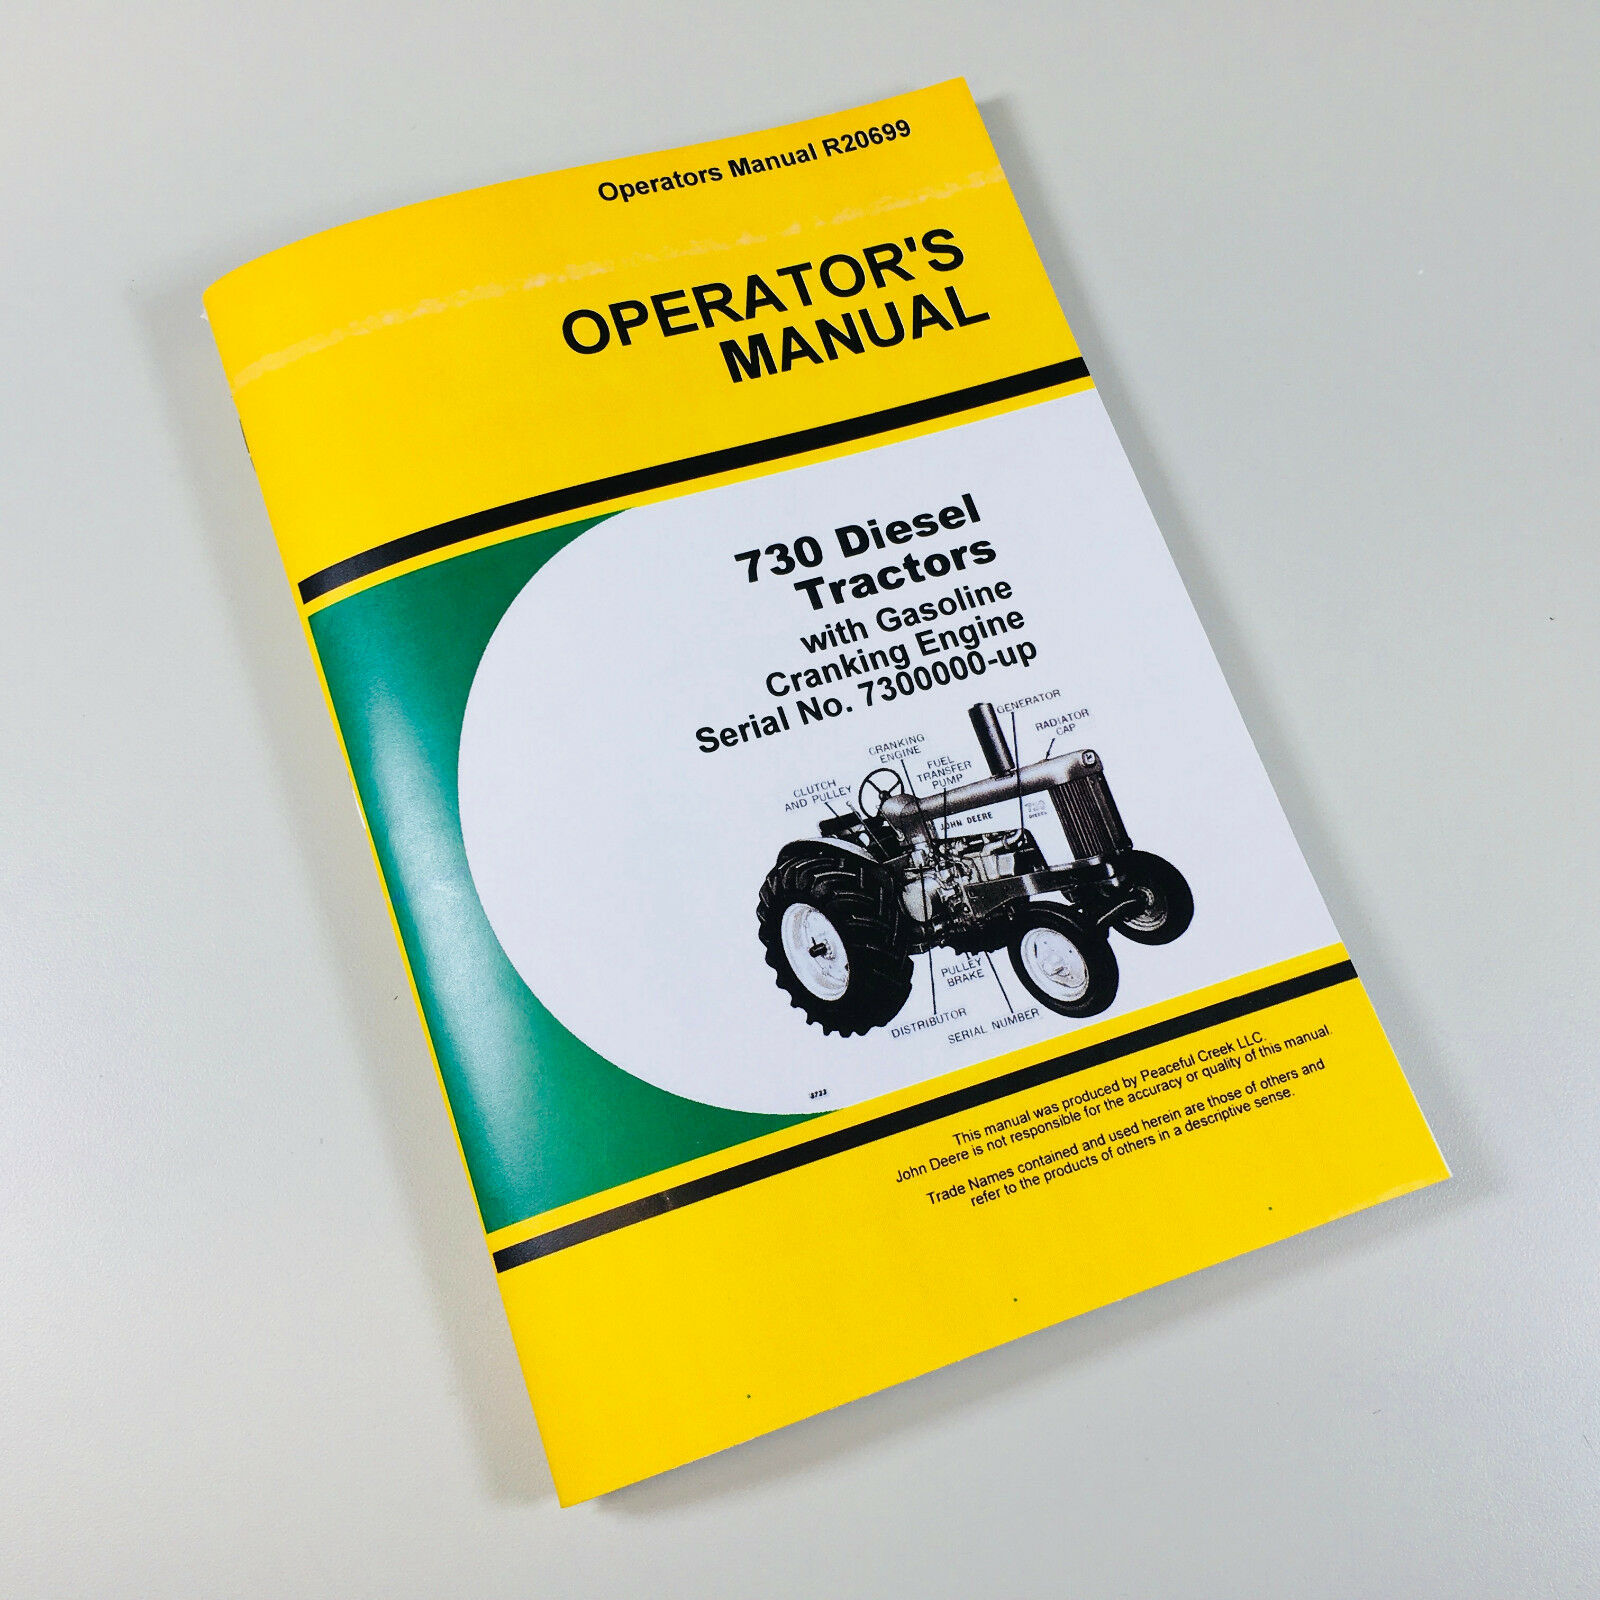 OPERATORS MANUAL FOR JD 730 DIESEL TRACTOR w/ GASOLINE CRANKING ENGINE.  Complete Operations/Controls/Maintenance. 132 Pages